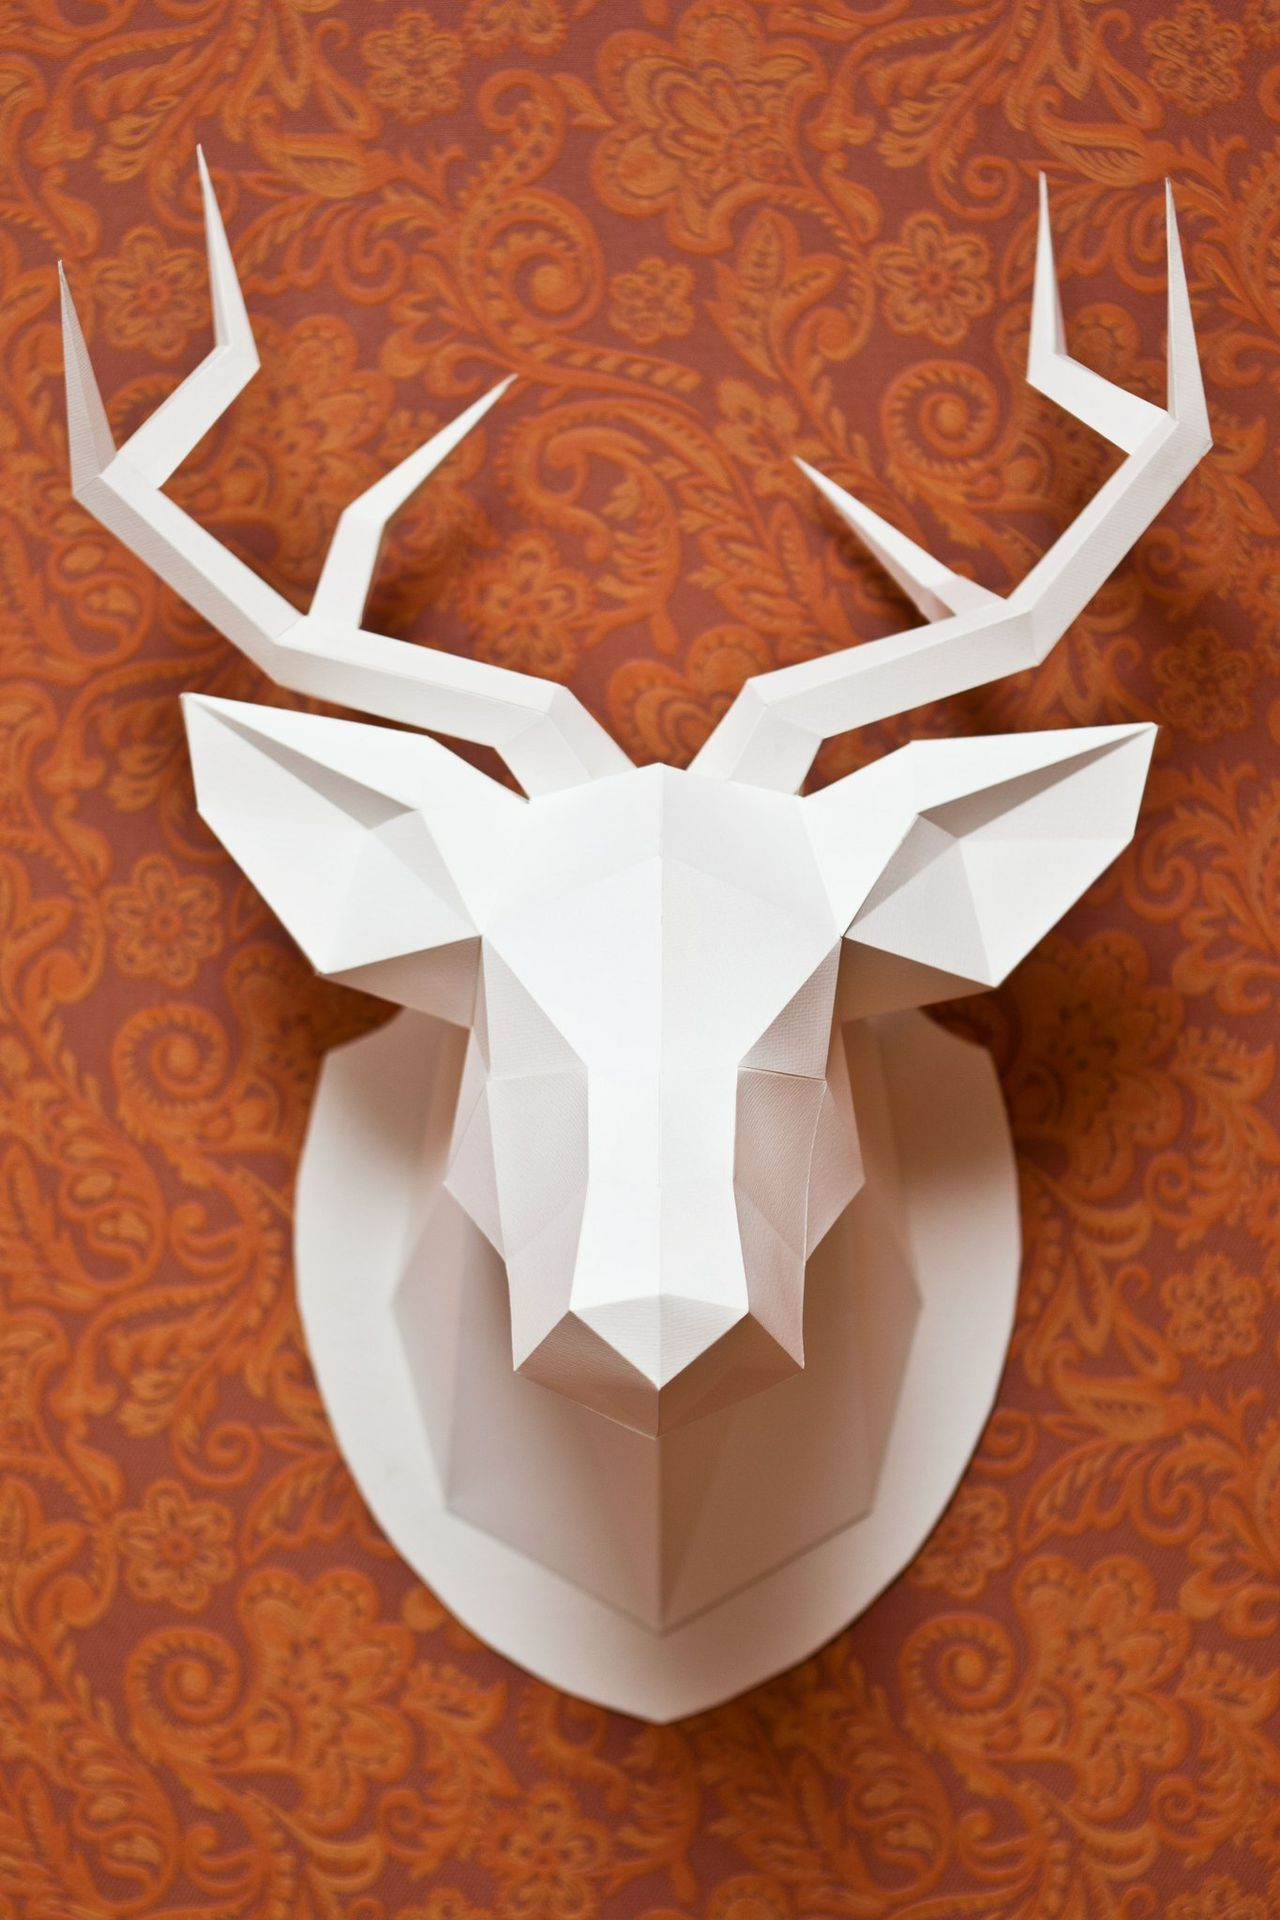 2d Deer Head Template With Manual On English Paper Crafts Paper Art Crafts